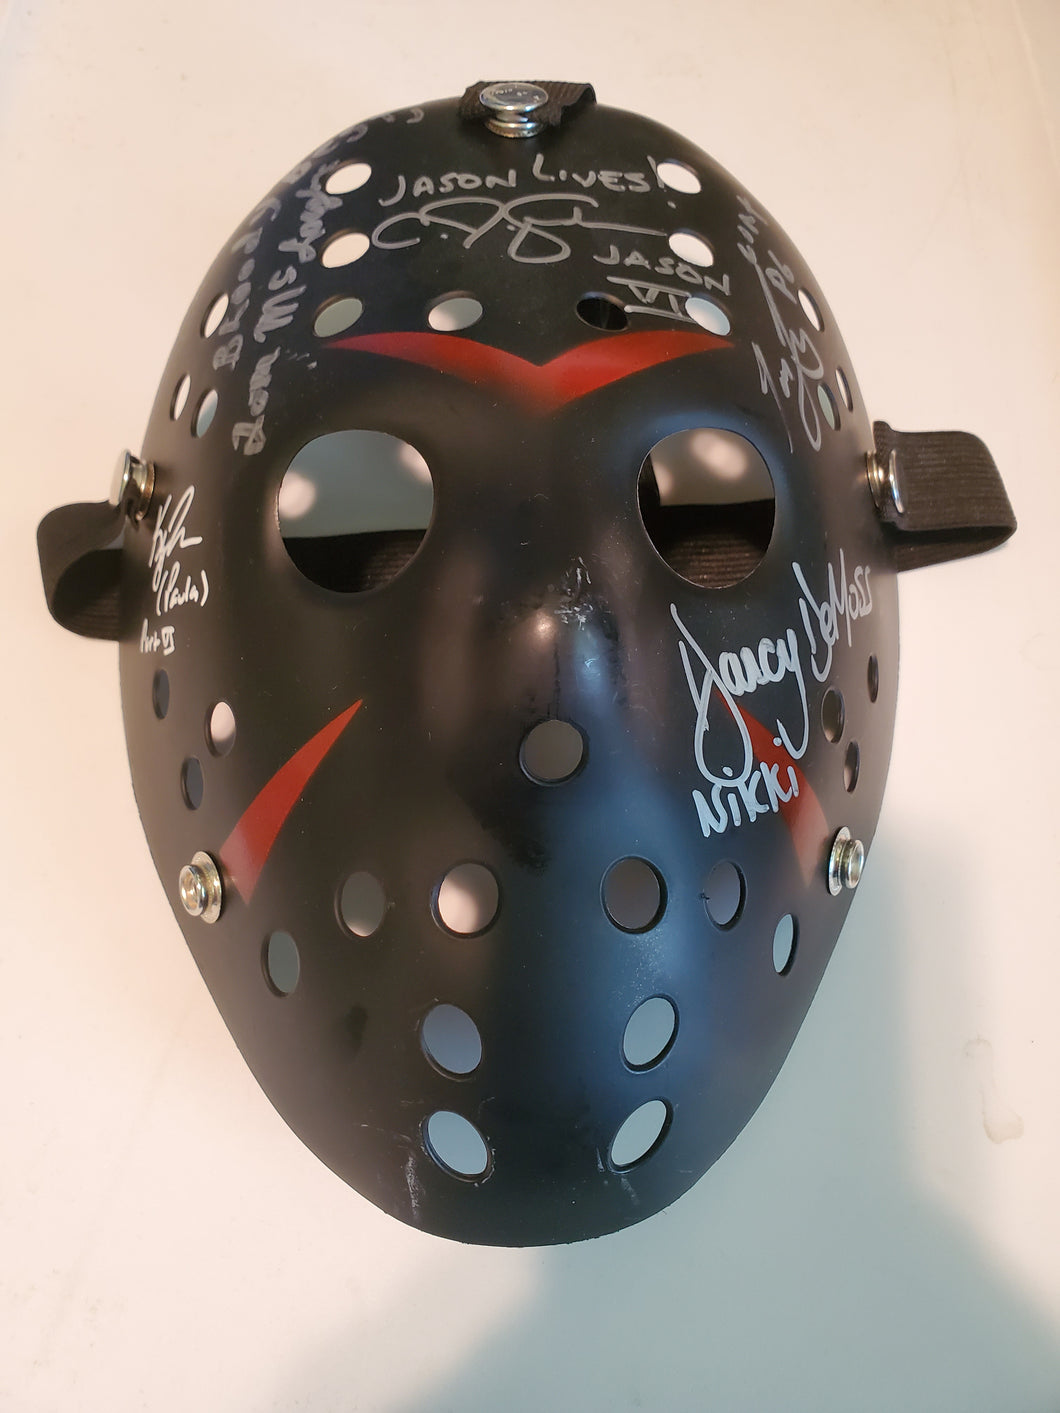 Friday the 13th part 6 cast signed hockey mask